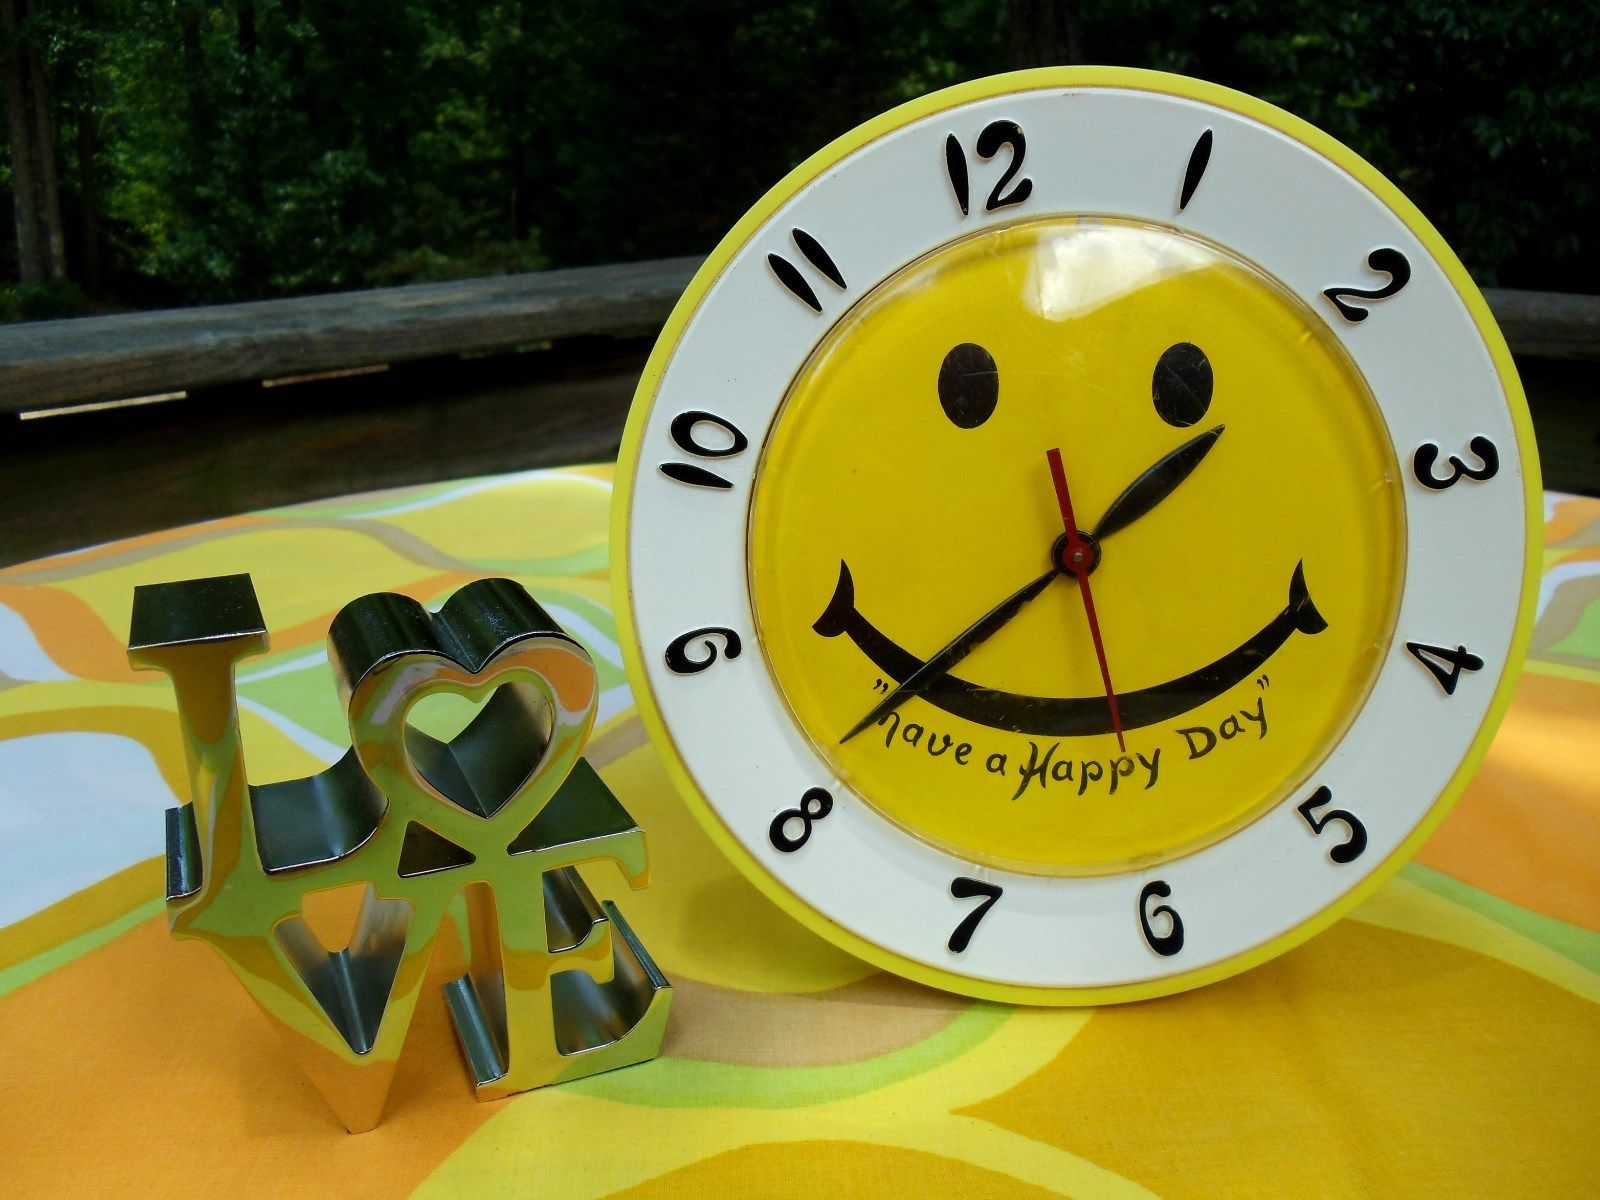 Vtg 1970s Retro Have A Happy Nice Day Yellow Smiley Face Groovy Wall Clock Mod | eBay